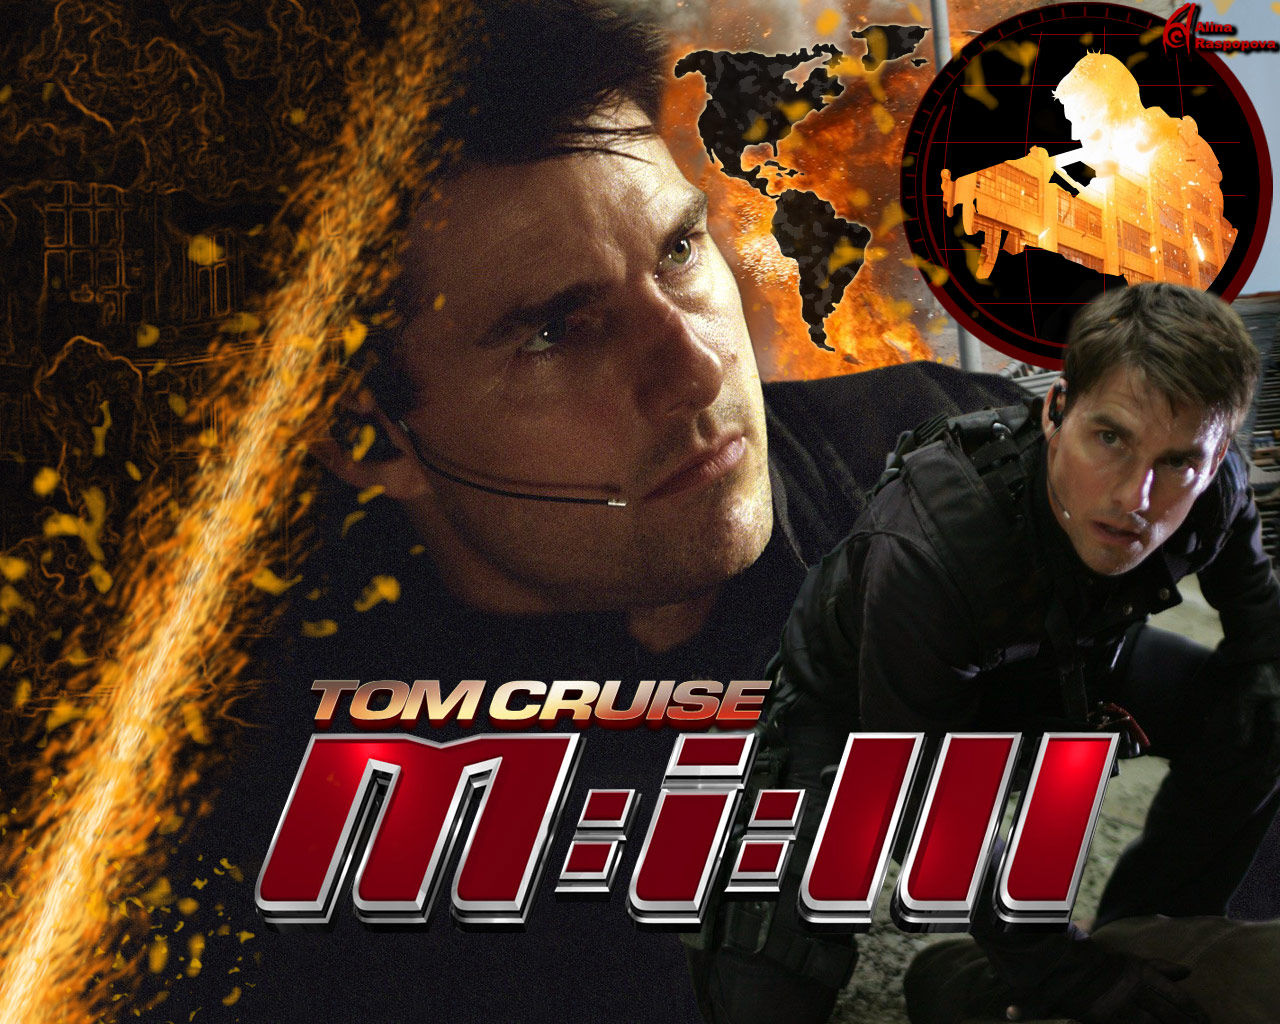 Mission: Impossible III wallpapers, Movie, HQ Mission